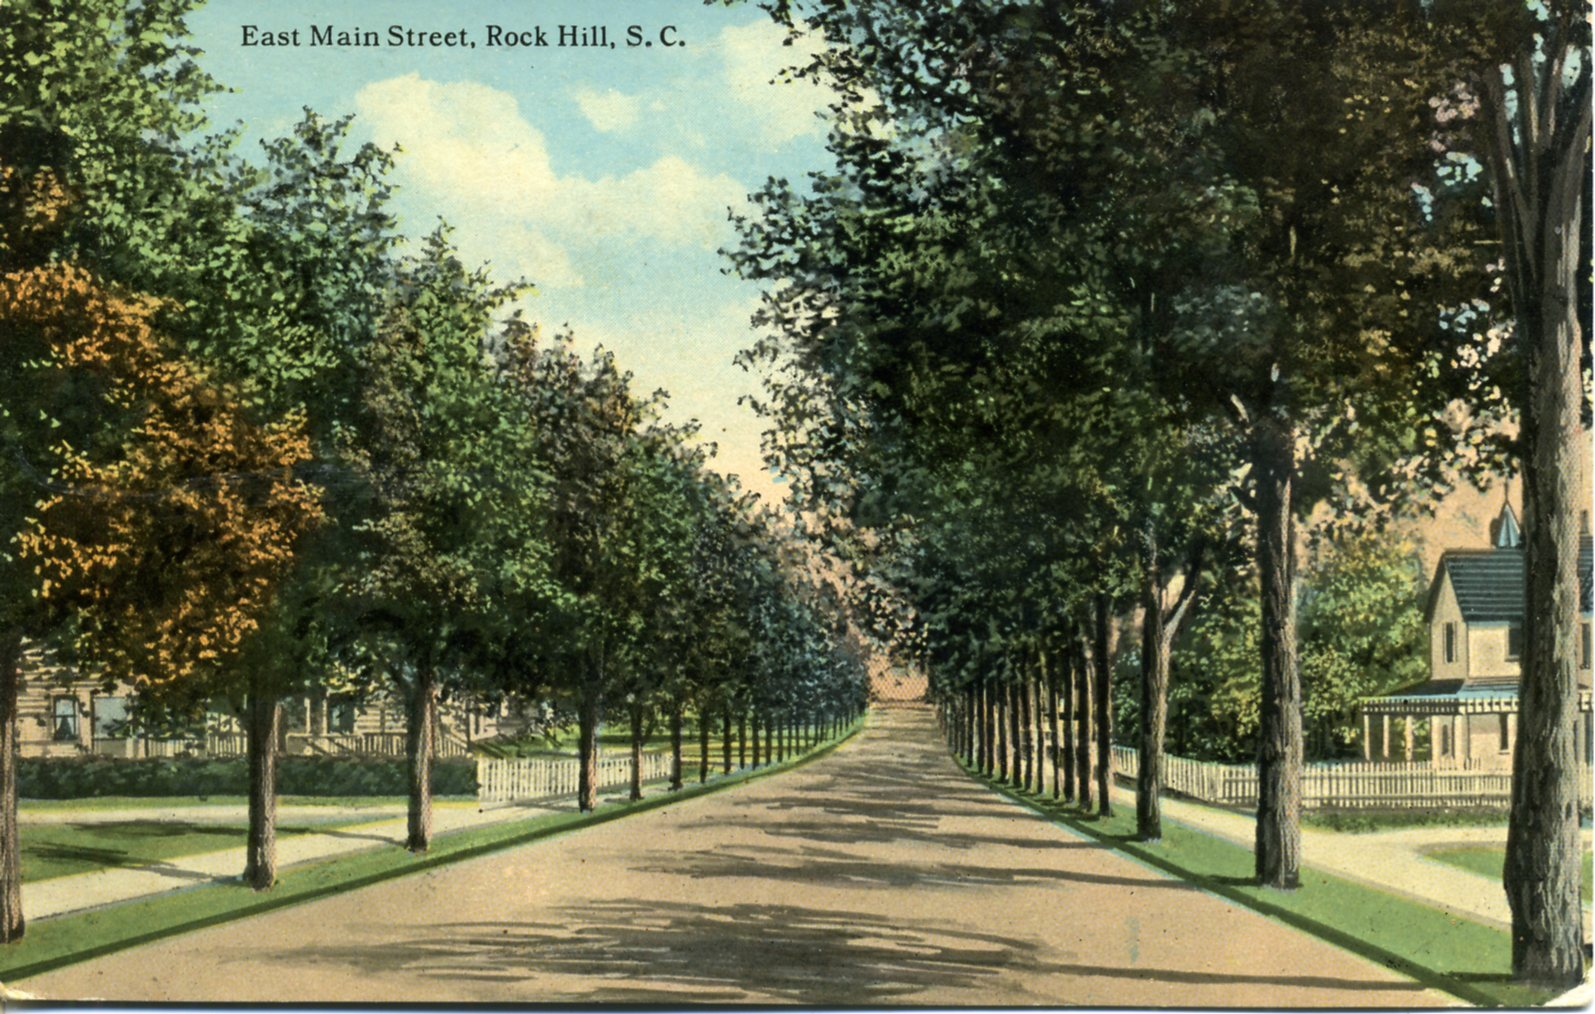 Enlarge this turn of the century postcard of East Main St., to see the facade of the Cobb House (rt).